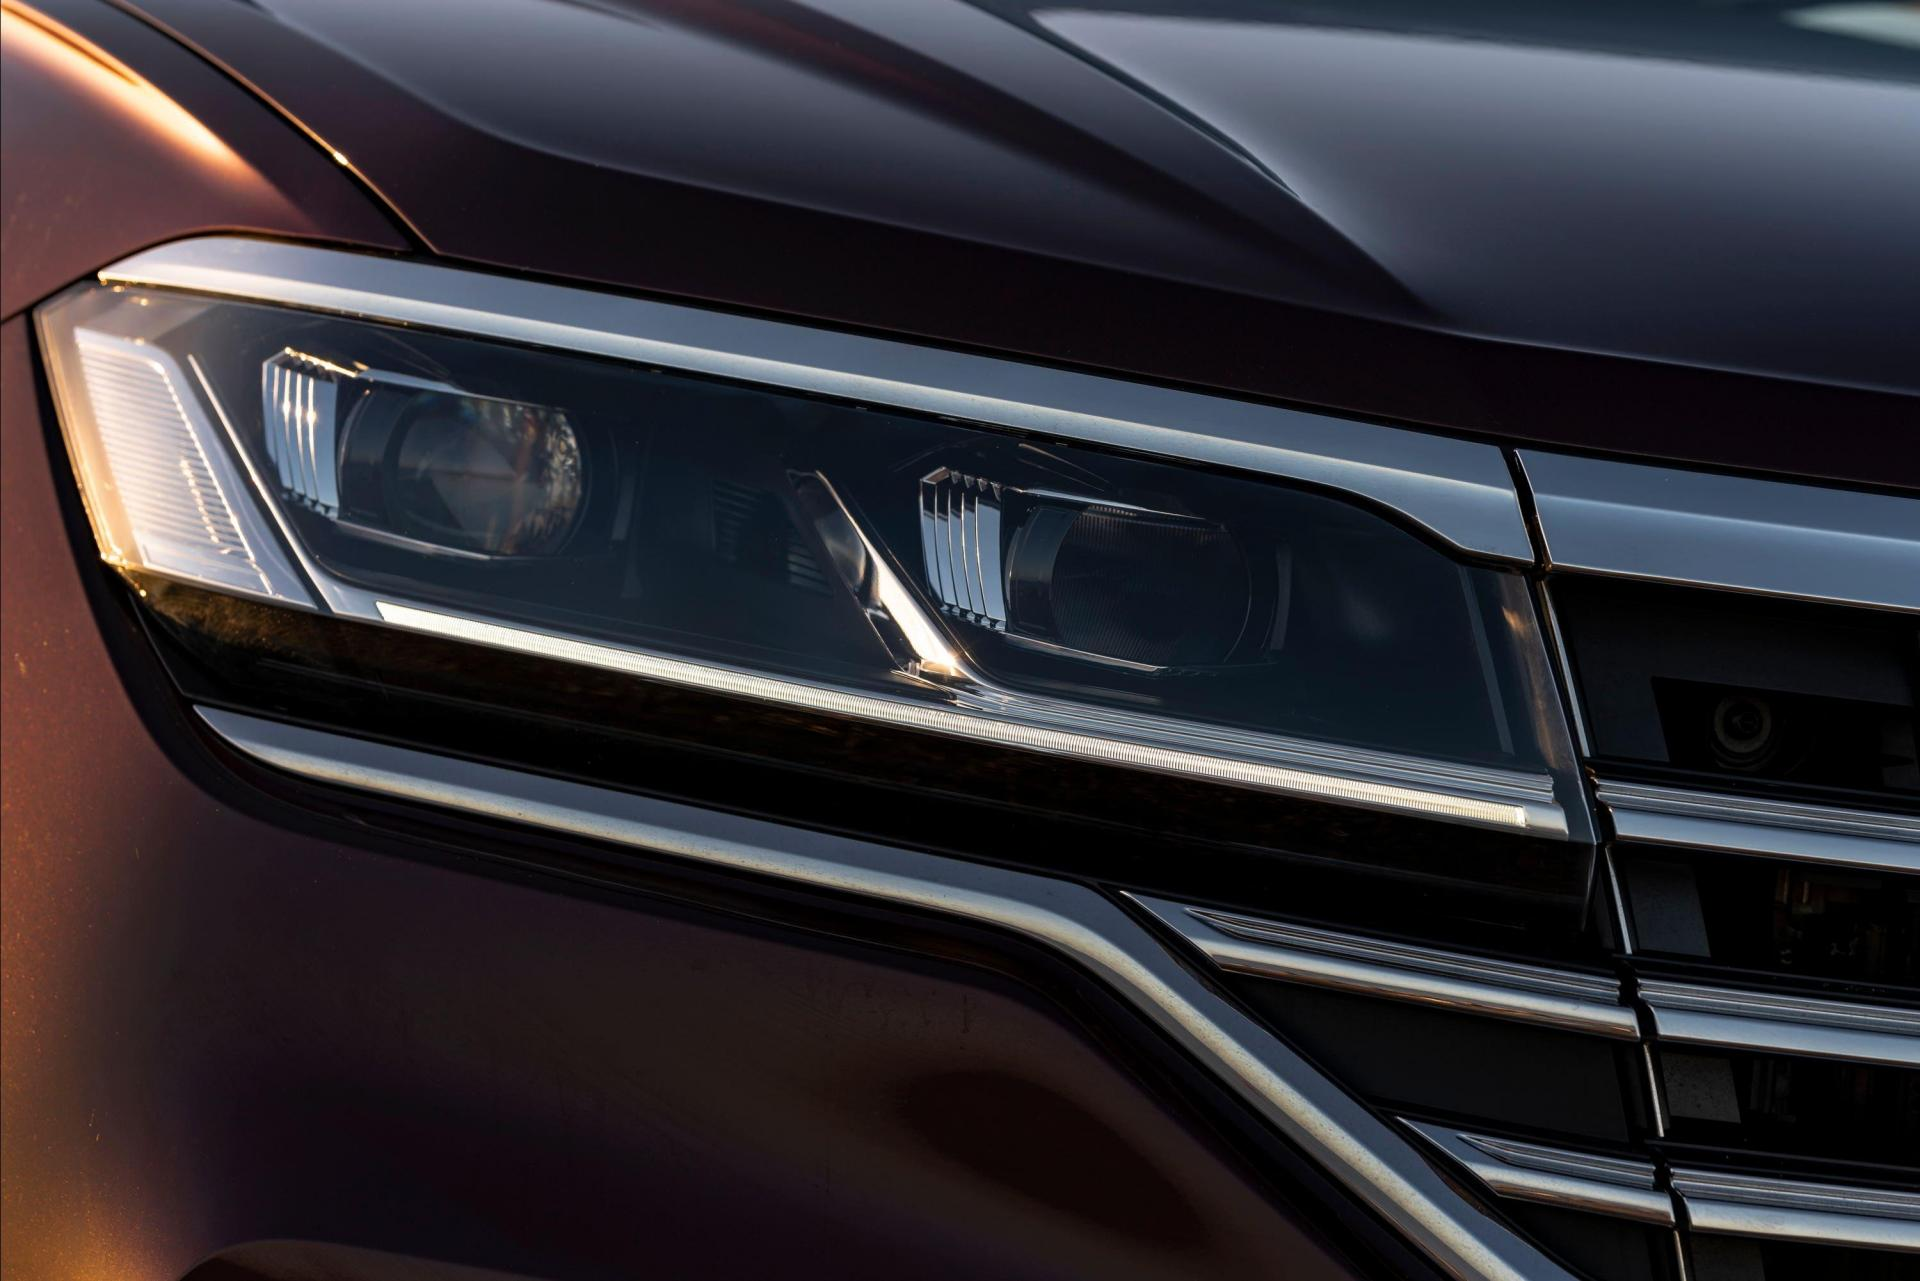 Chrome elements give the Touareg a distinctly premium appeal.